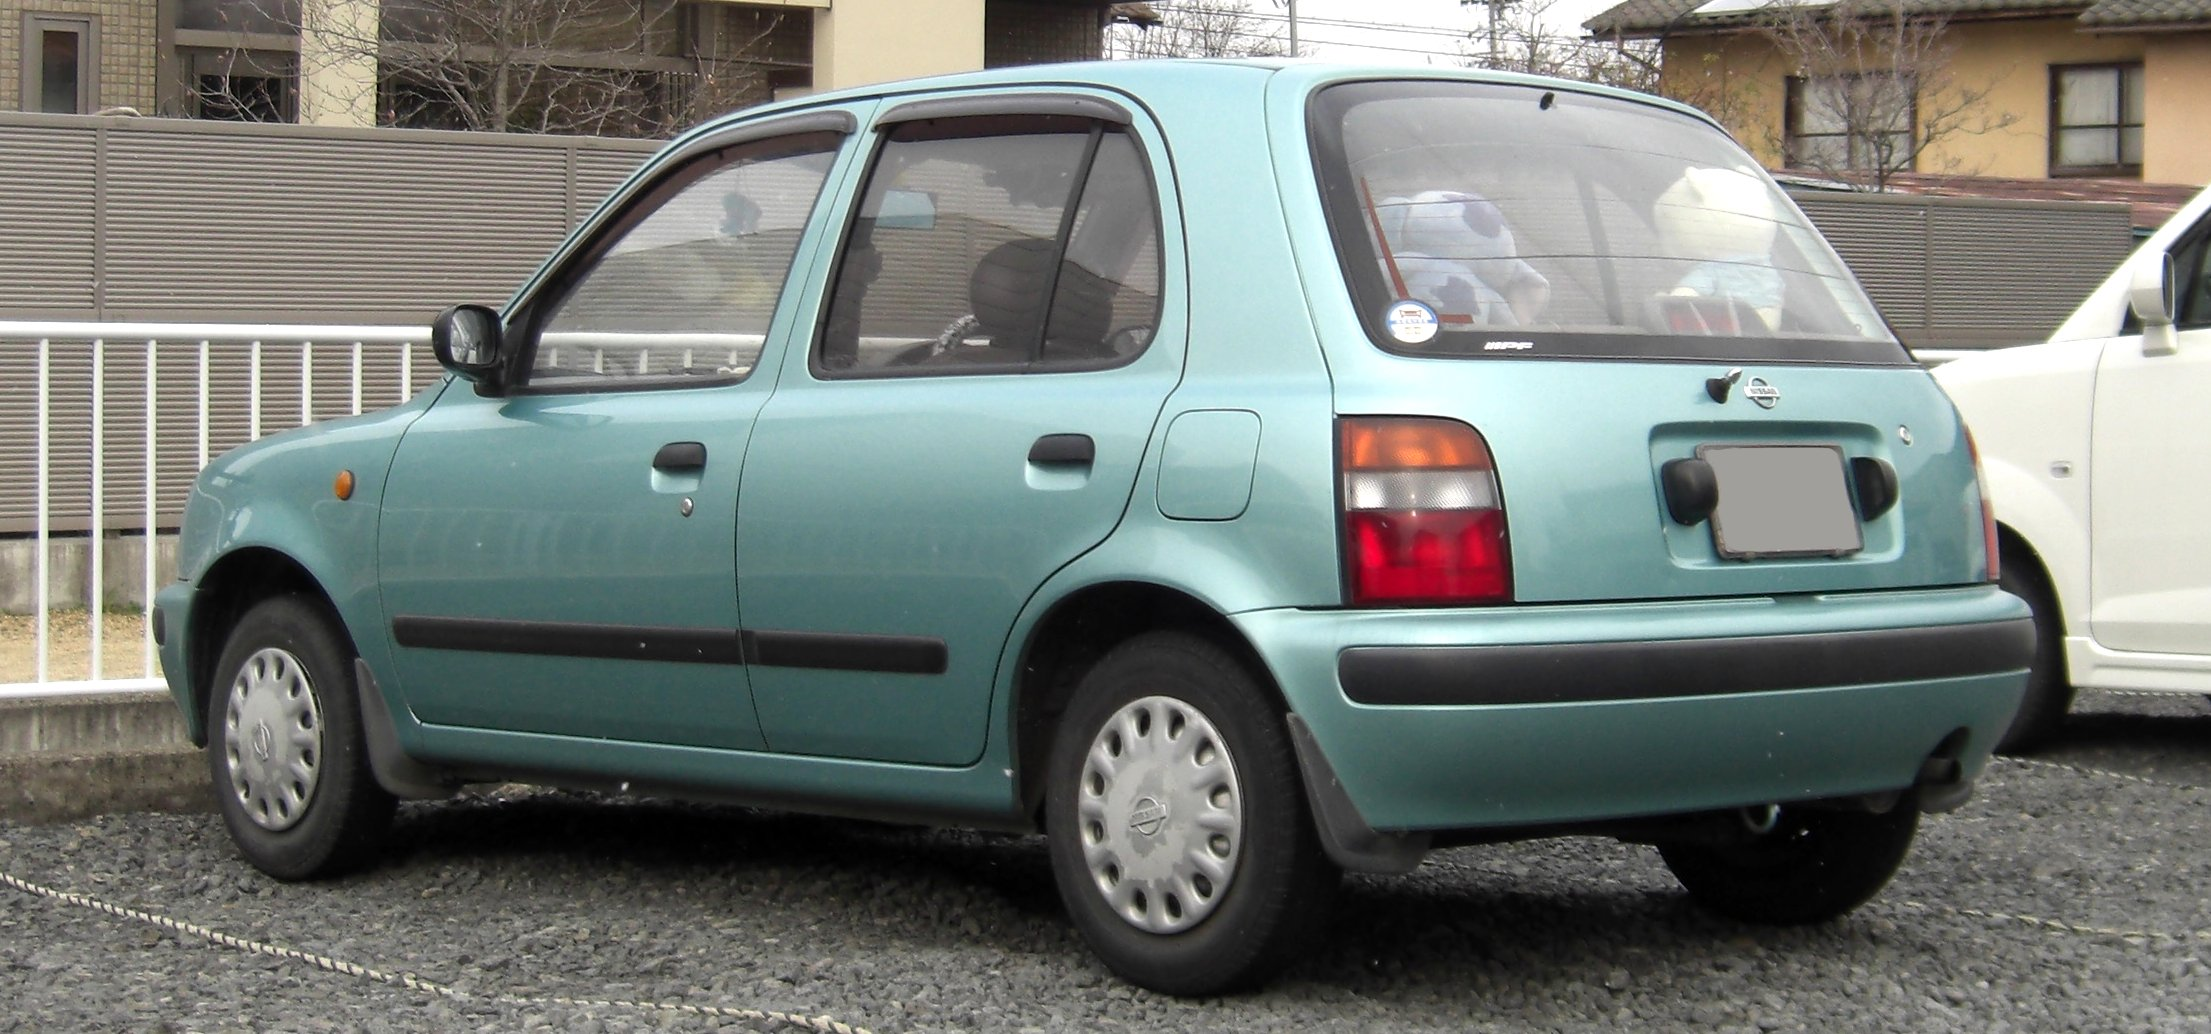 http://upload.wikimedia.org/wikipedia/commons/0/0b/1992-1995_NISSAN_March_rear.jpg